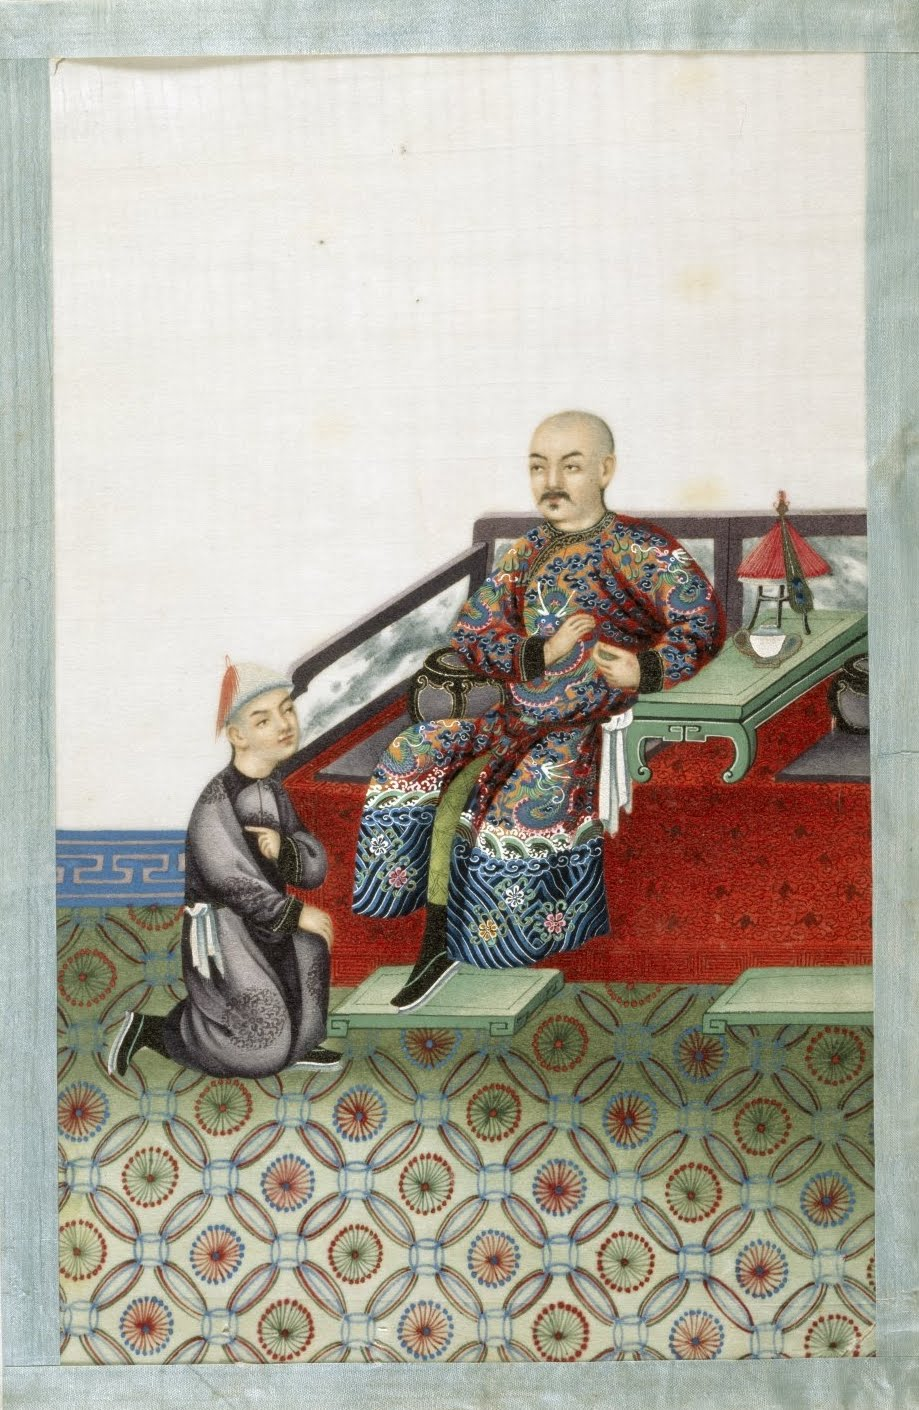 servant kneels before nobleman in China